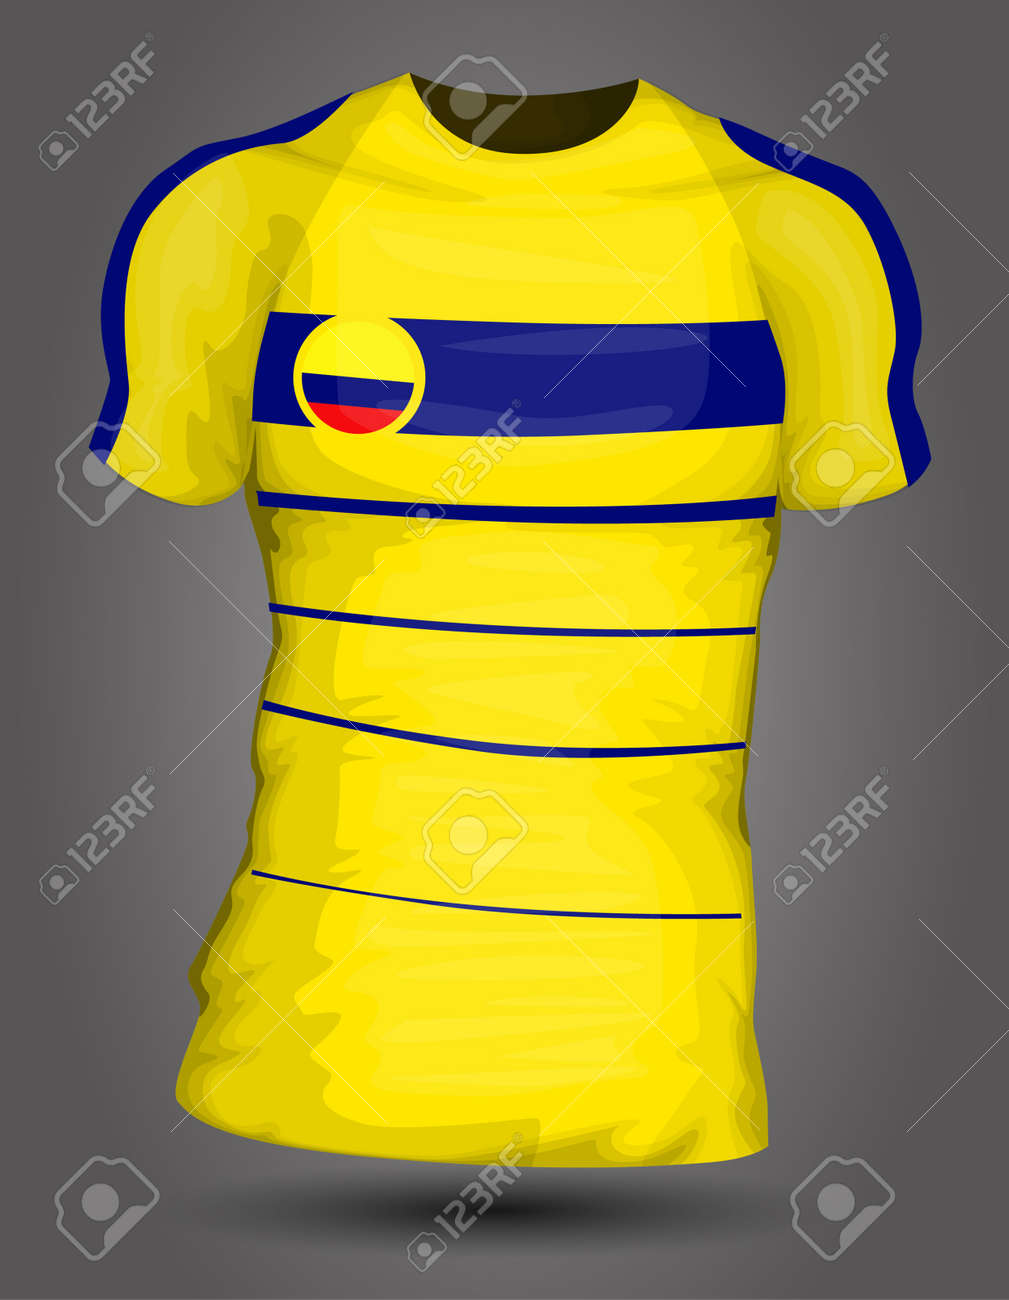 d351a4cbb Colombia soccer jersey Stock Vector - 27320405